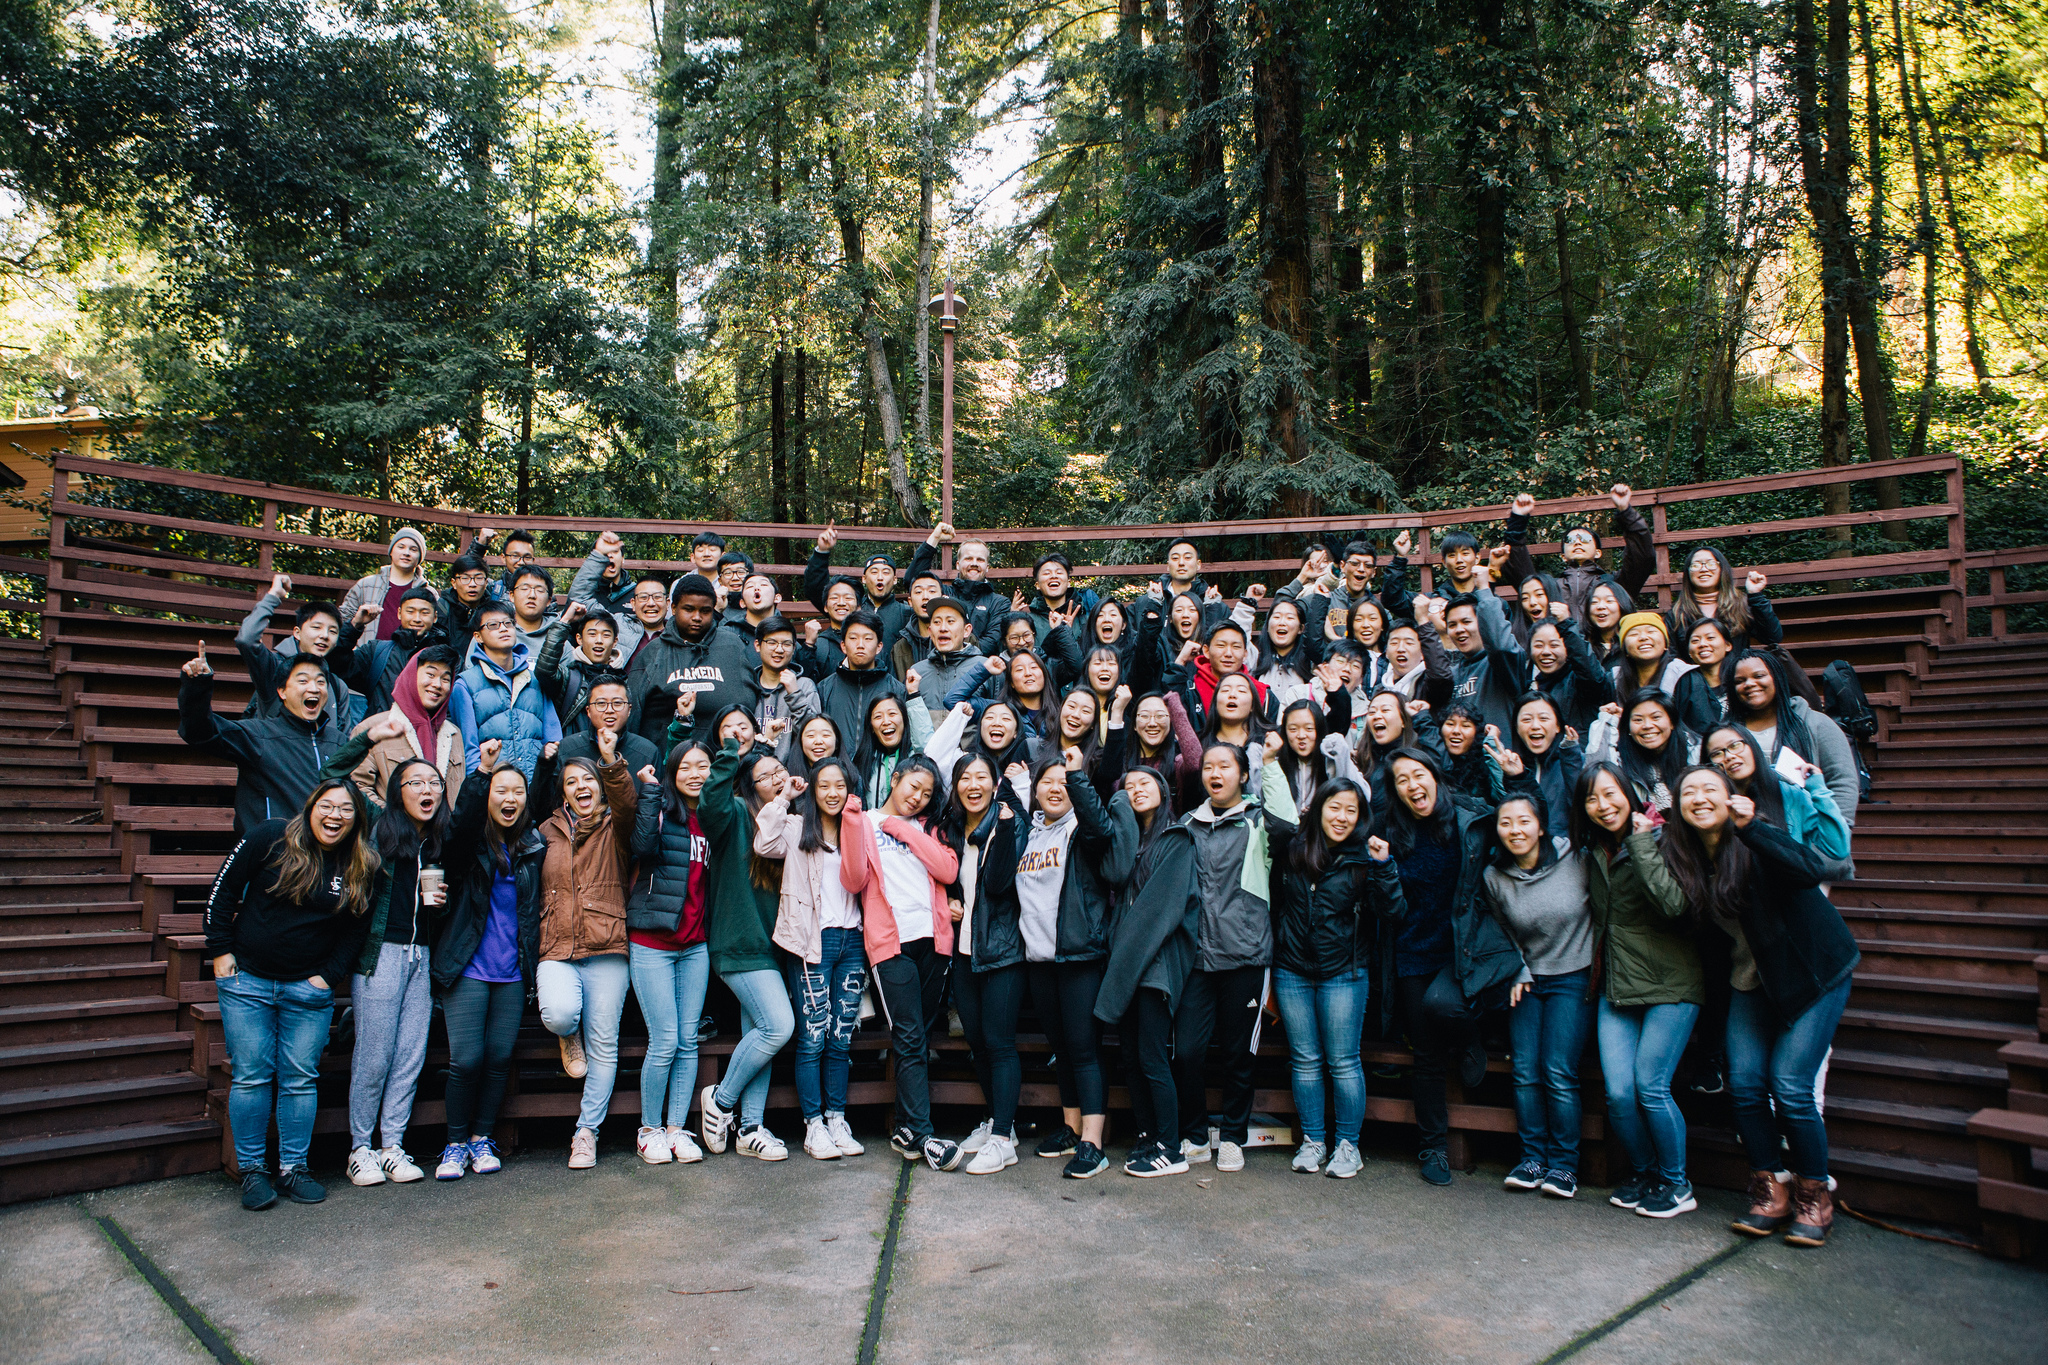 What We Are - A Youth ministry serving middle and high school students in the Bay Area